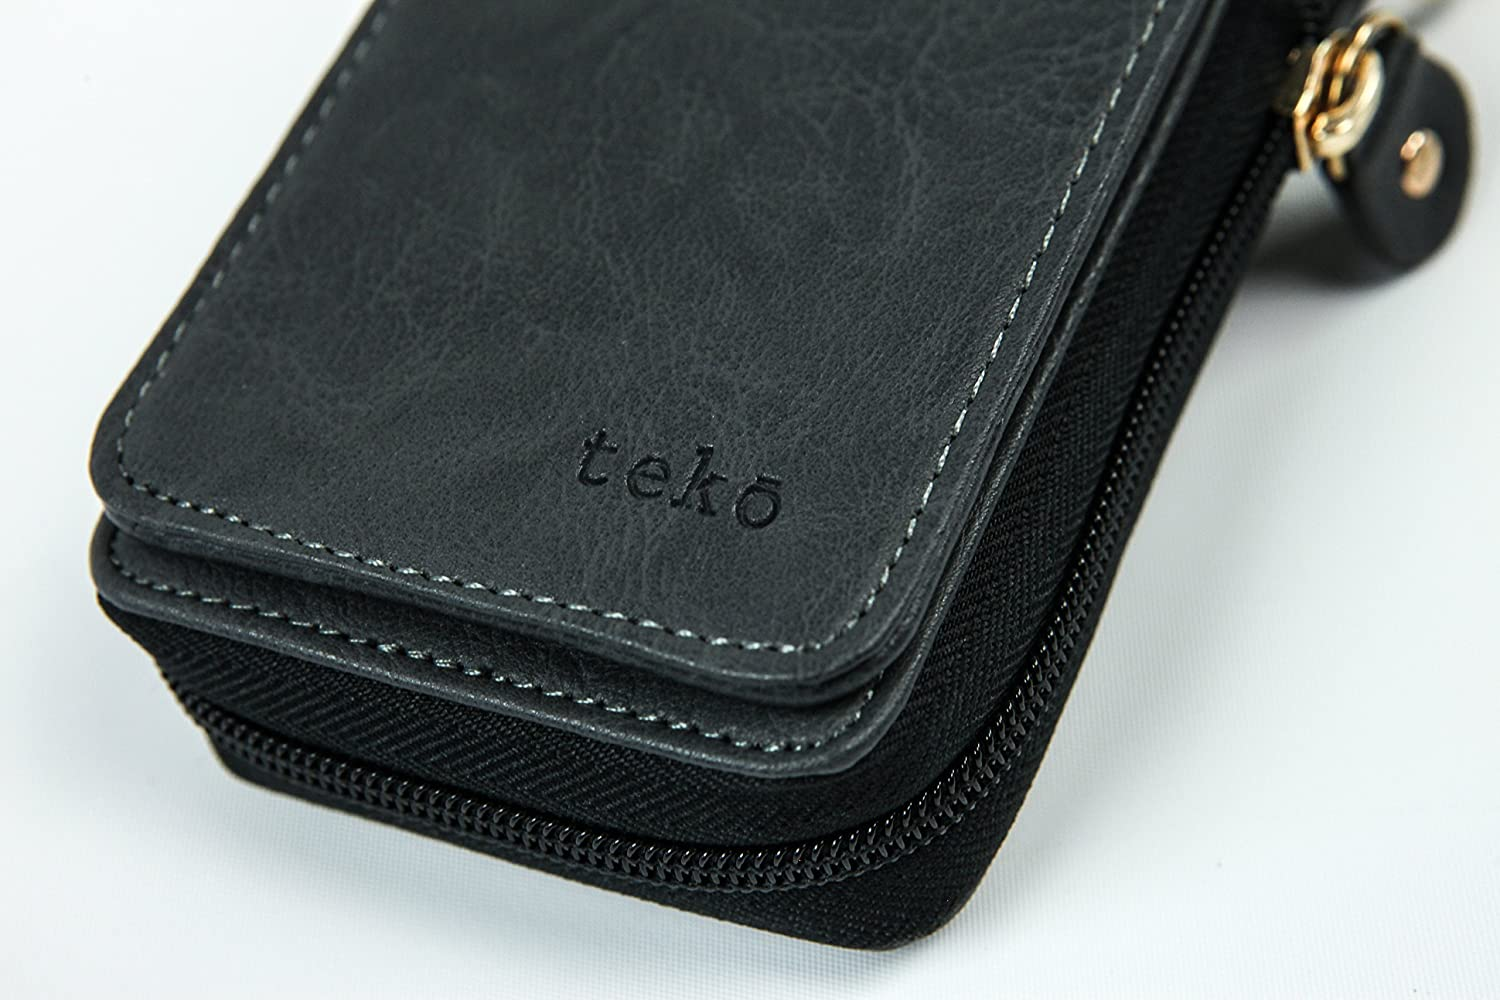 Amazon.com: Leather-like Funda de transporte para Vape, Vape ...